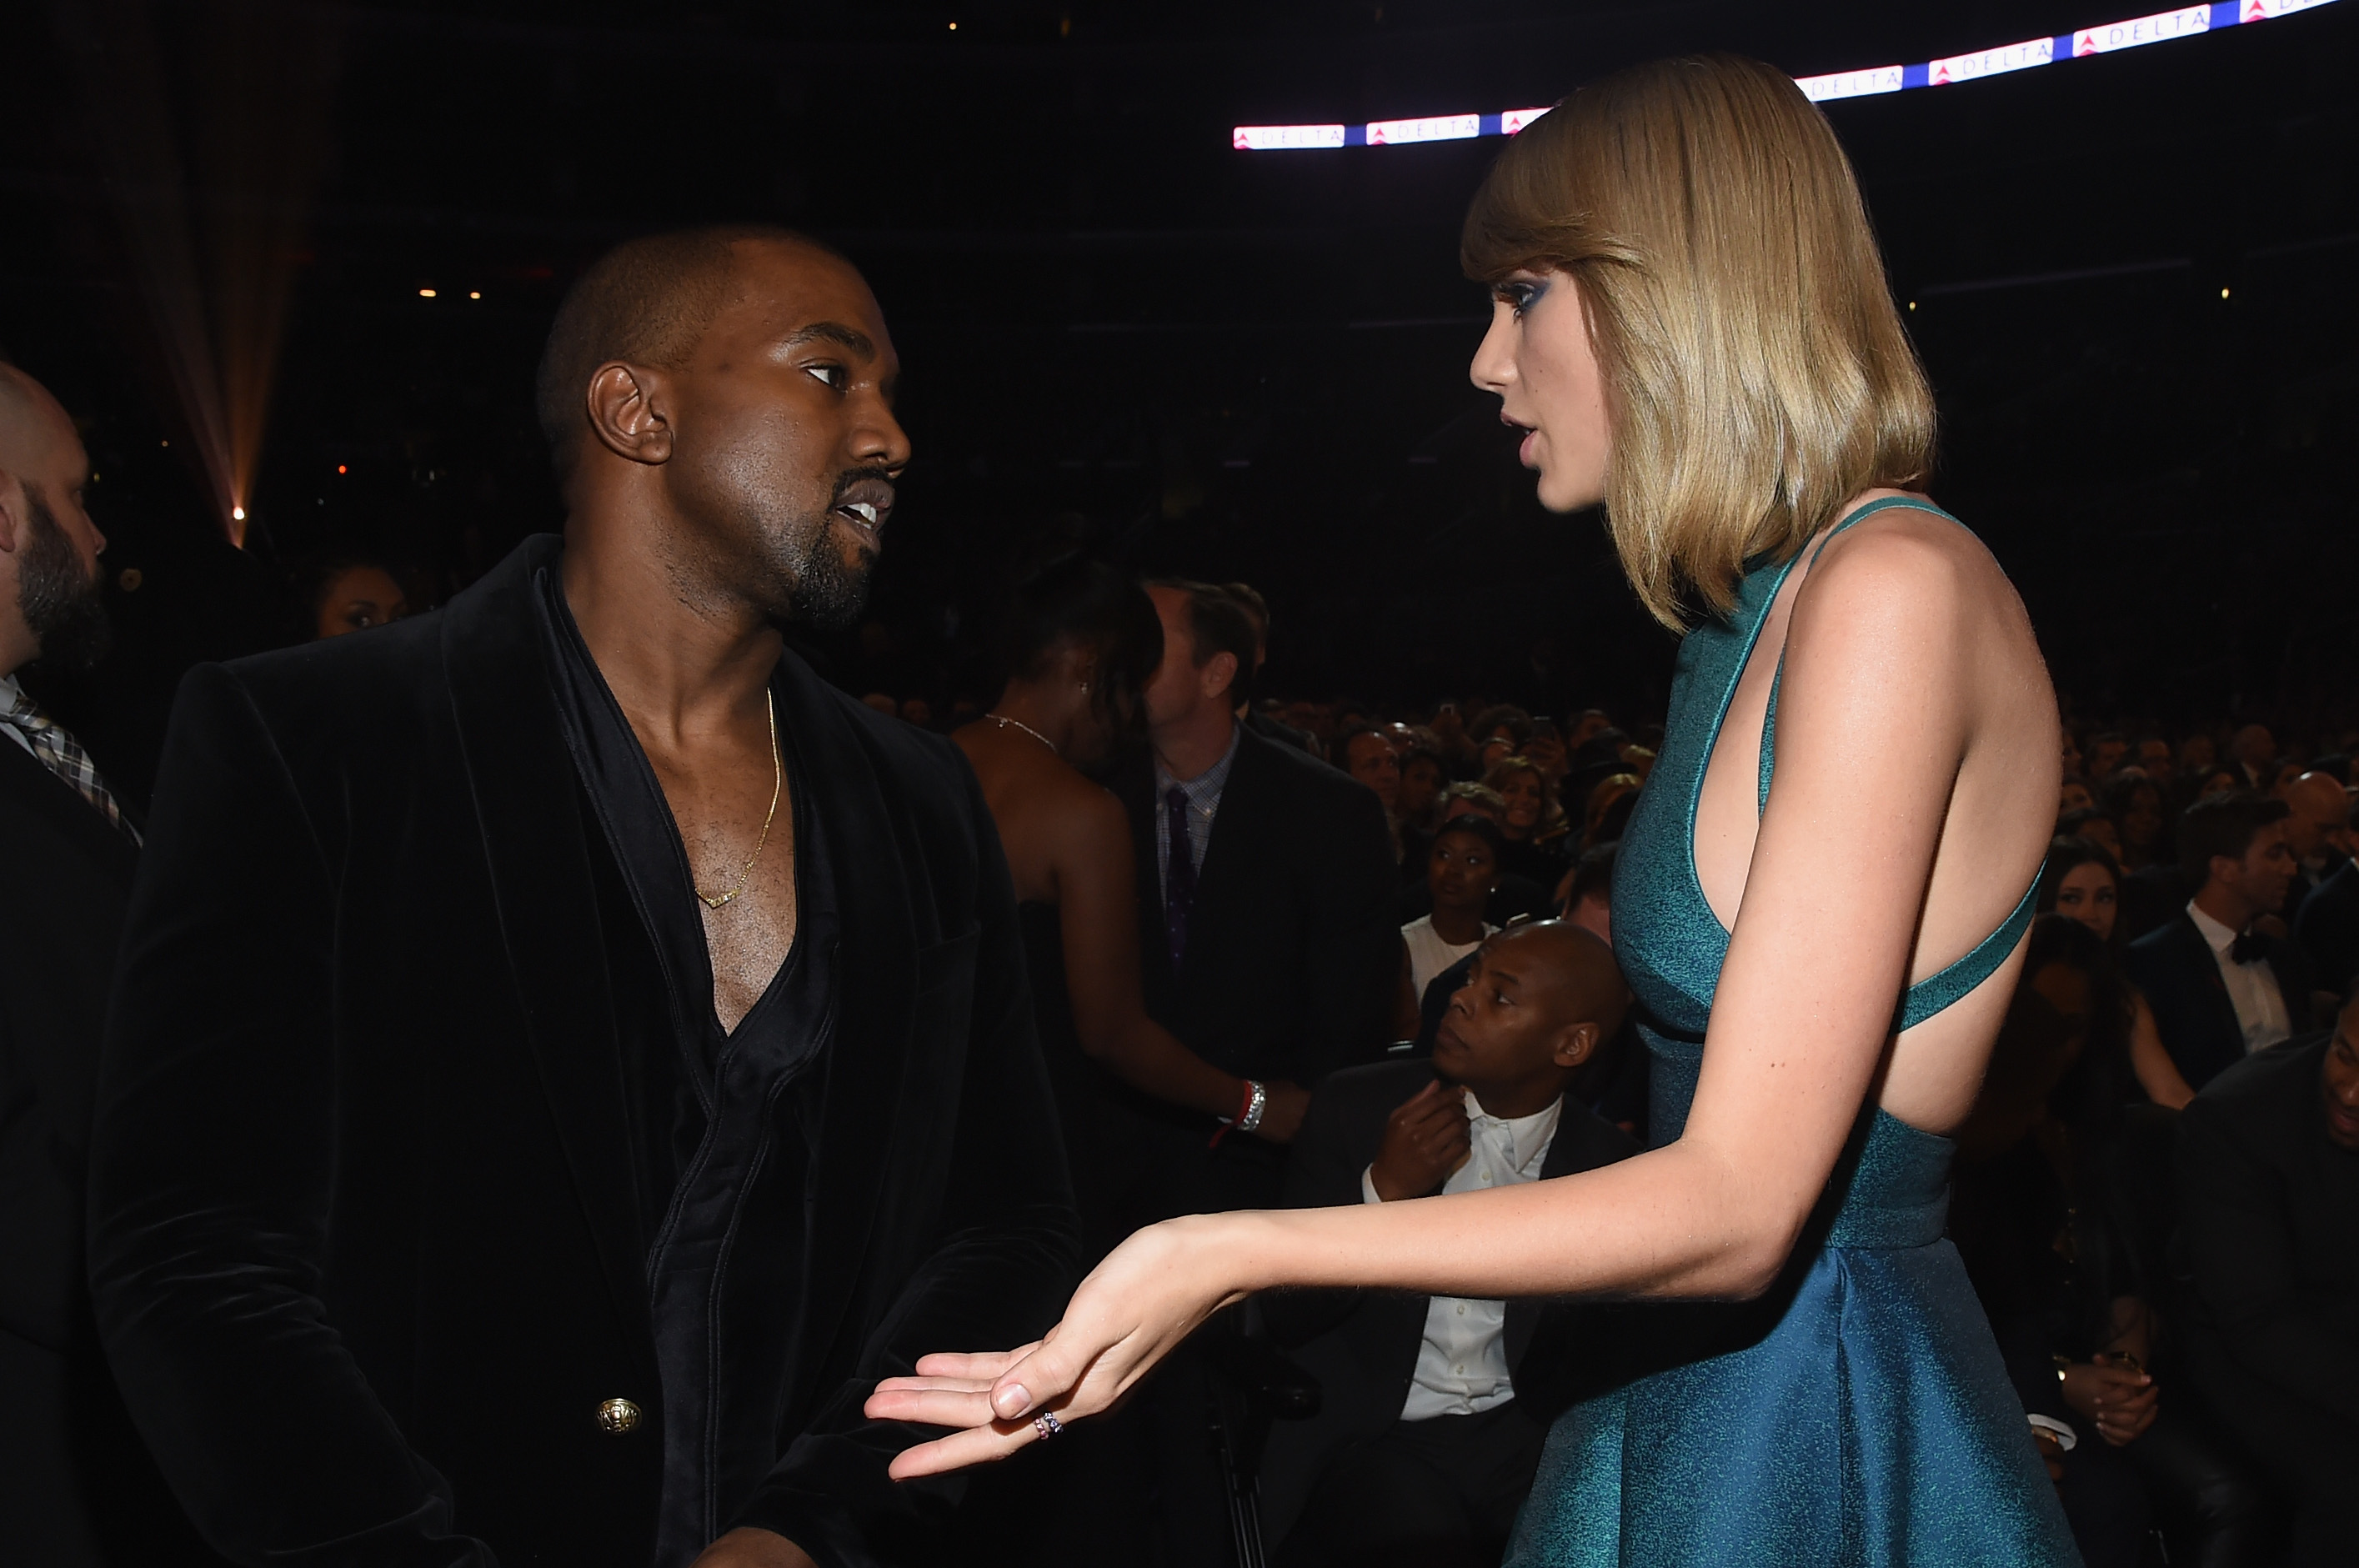 GettyImages 463036374 The Kanye West Taylor Swift Feud Has Just Got A Whole Lot Worse